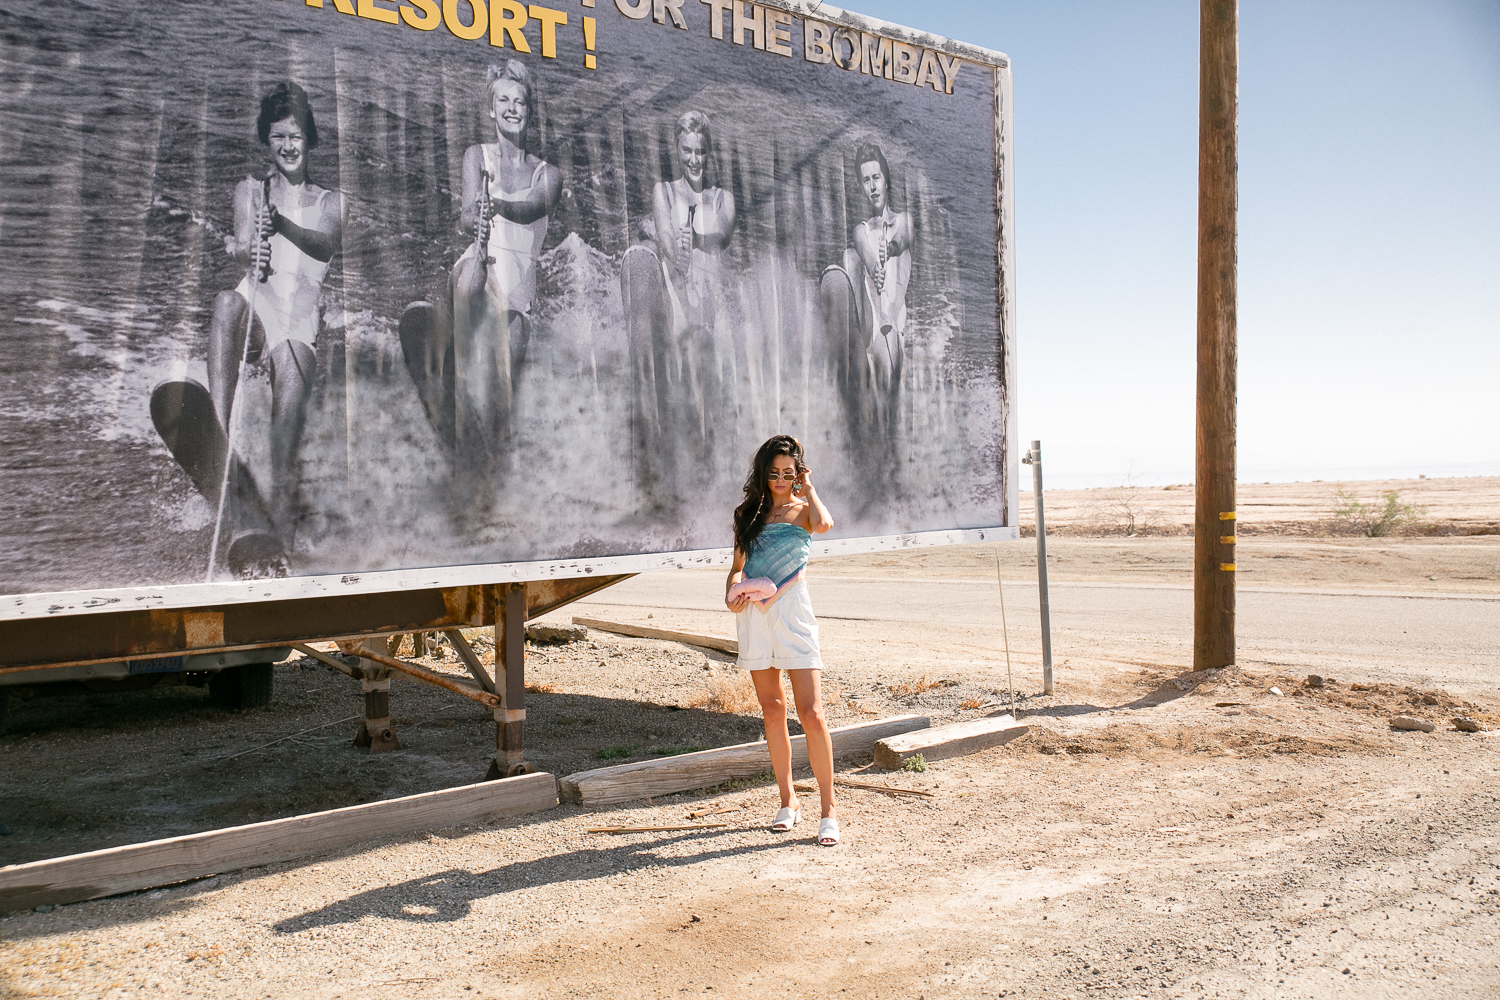 How To See The Best Of Bombay Beach - The Most Fascinating Town In California - Amy Marietta - Salton Sea #saltonsea #bombaybeach #california